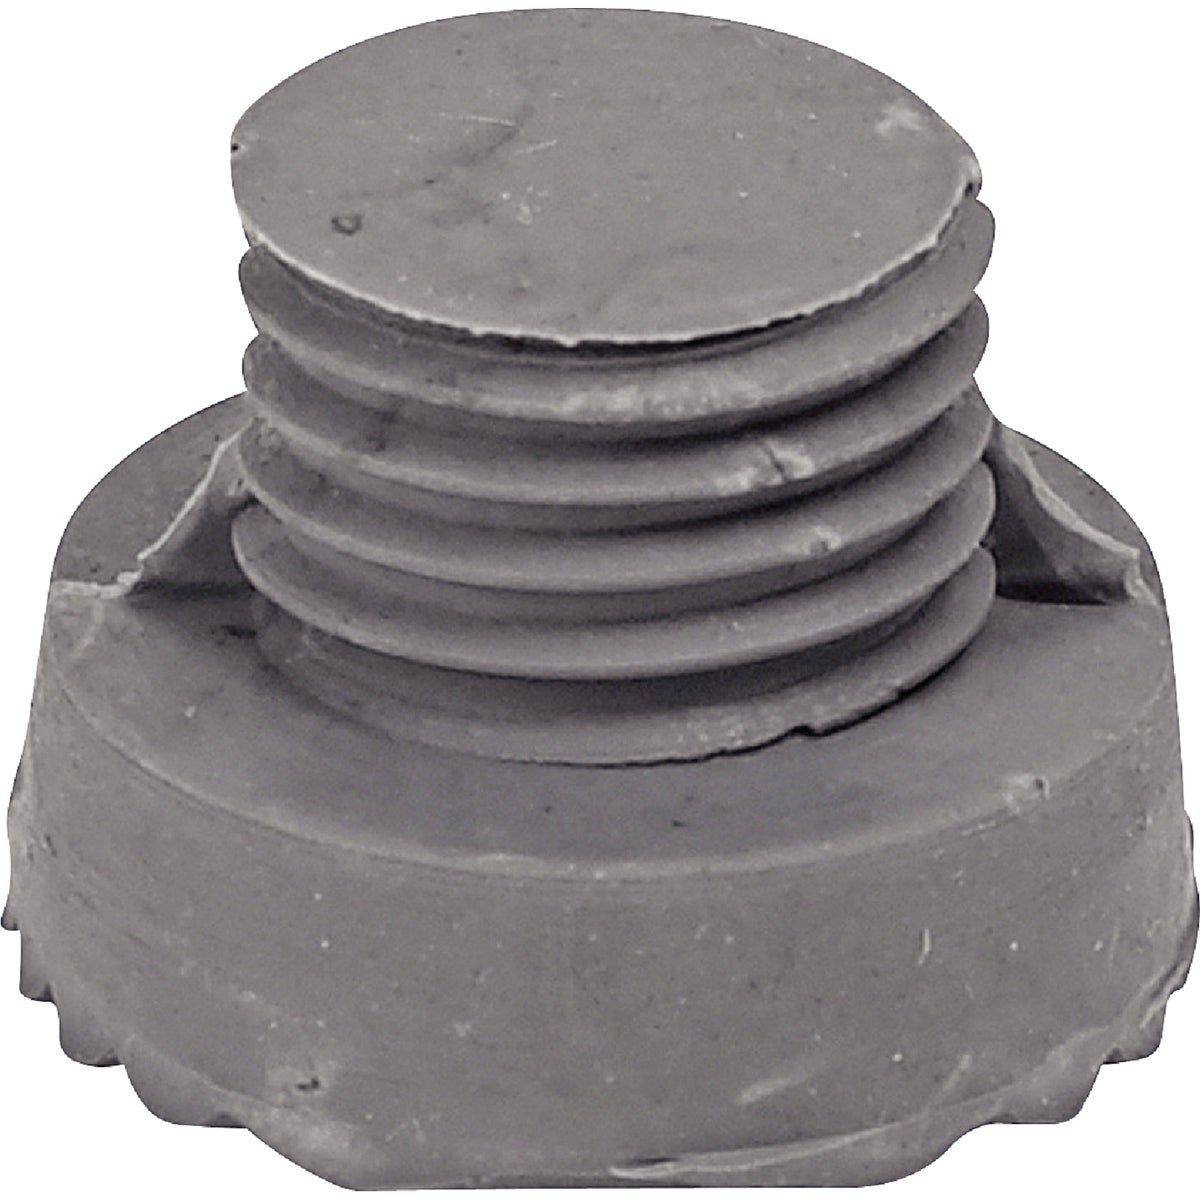 GRAY KICKDOWN HOLDER TIP - DT100075 by Tell Mfg Inc